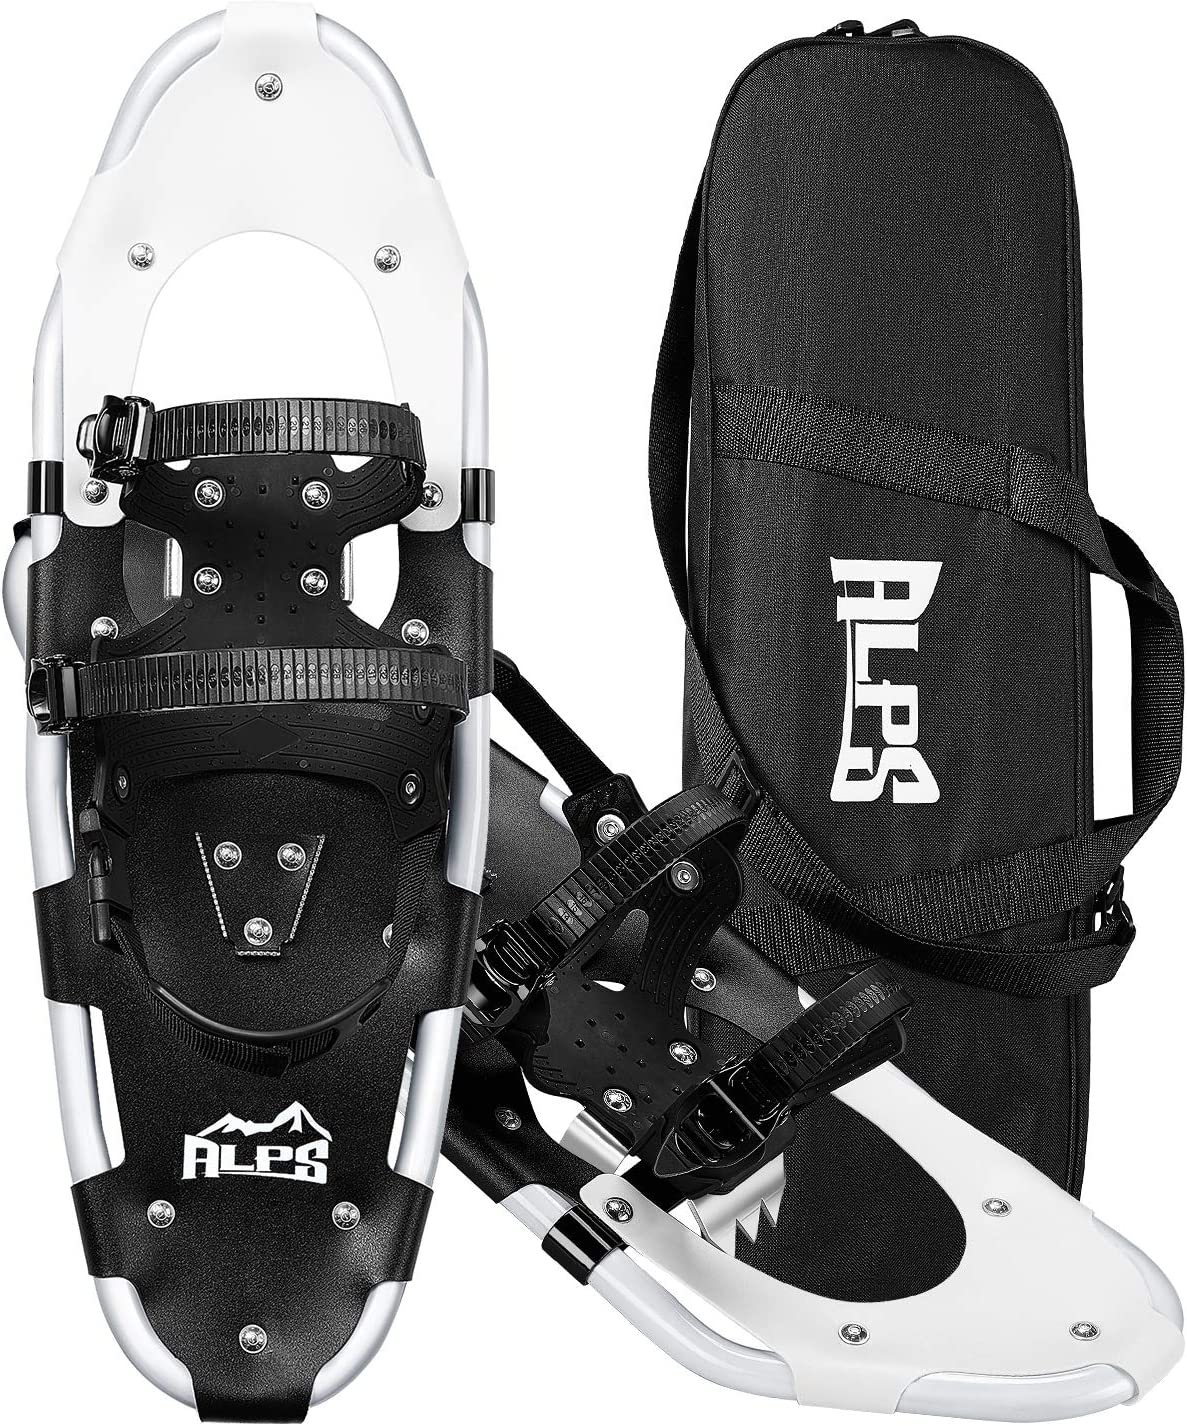 ALPS 21/25/27/30 Inches Aluminum Alloy Snowshoes for Adults Women Men with Quick Fit Bindings and Carry Bag